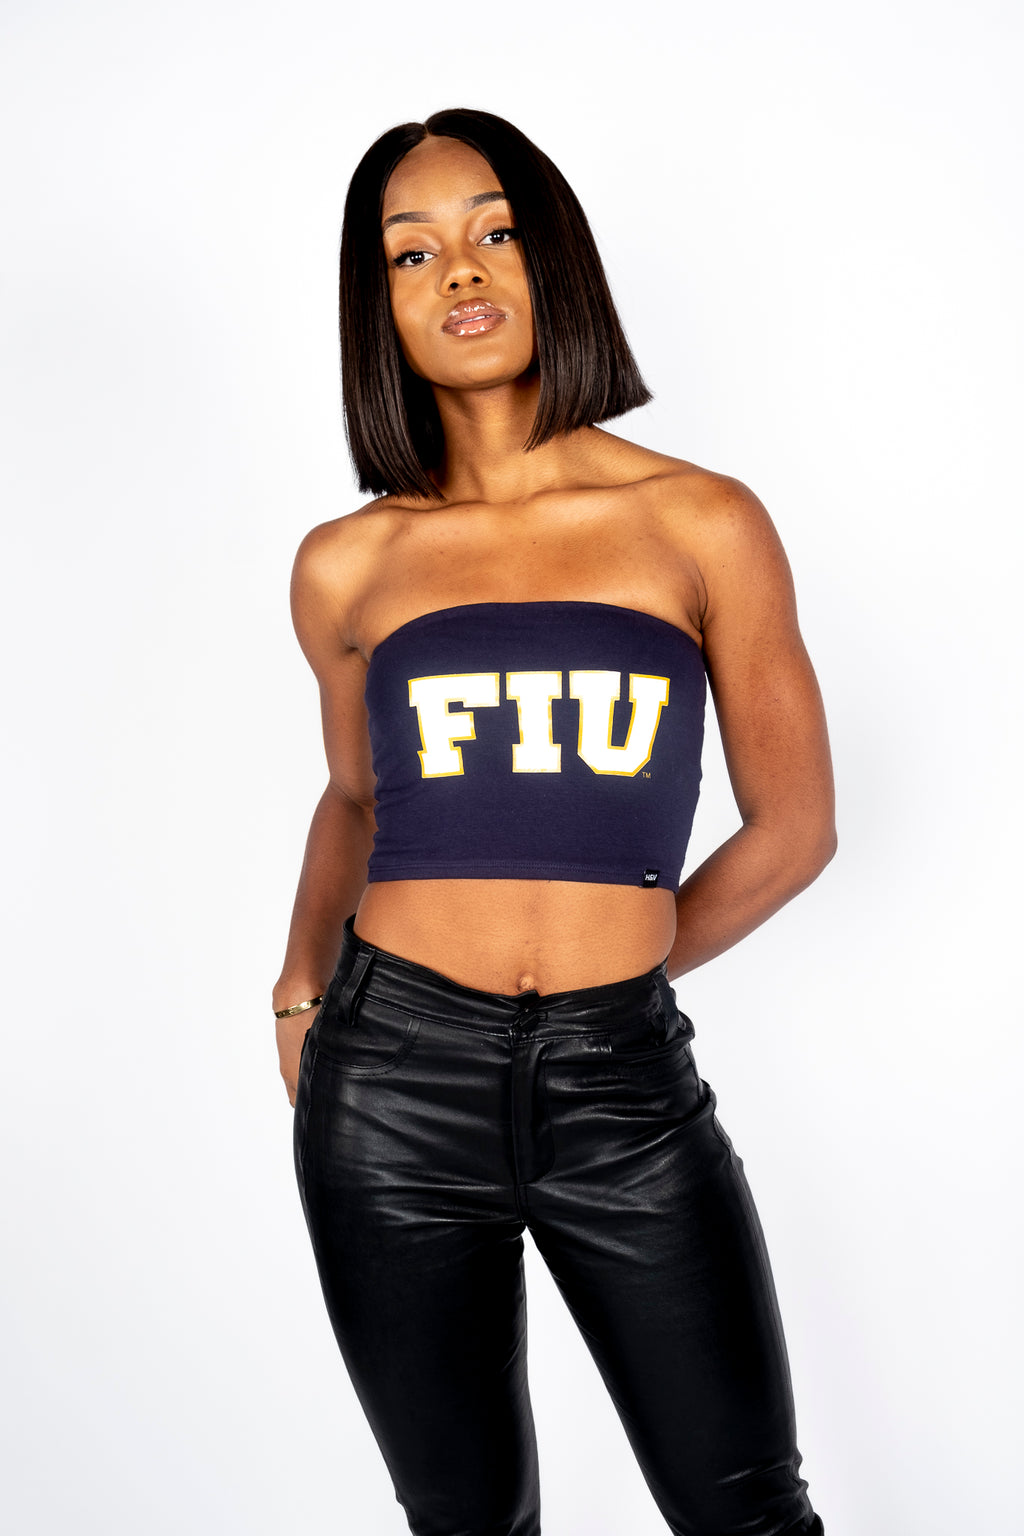 FIU Tube Top - Hype and Vice